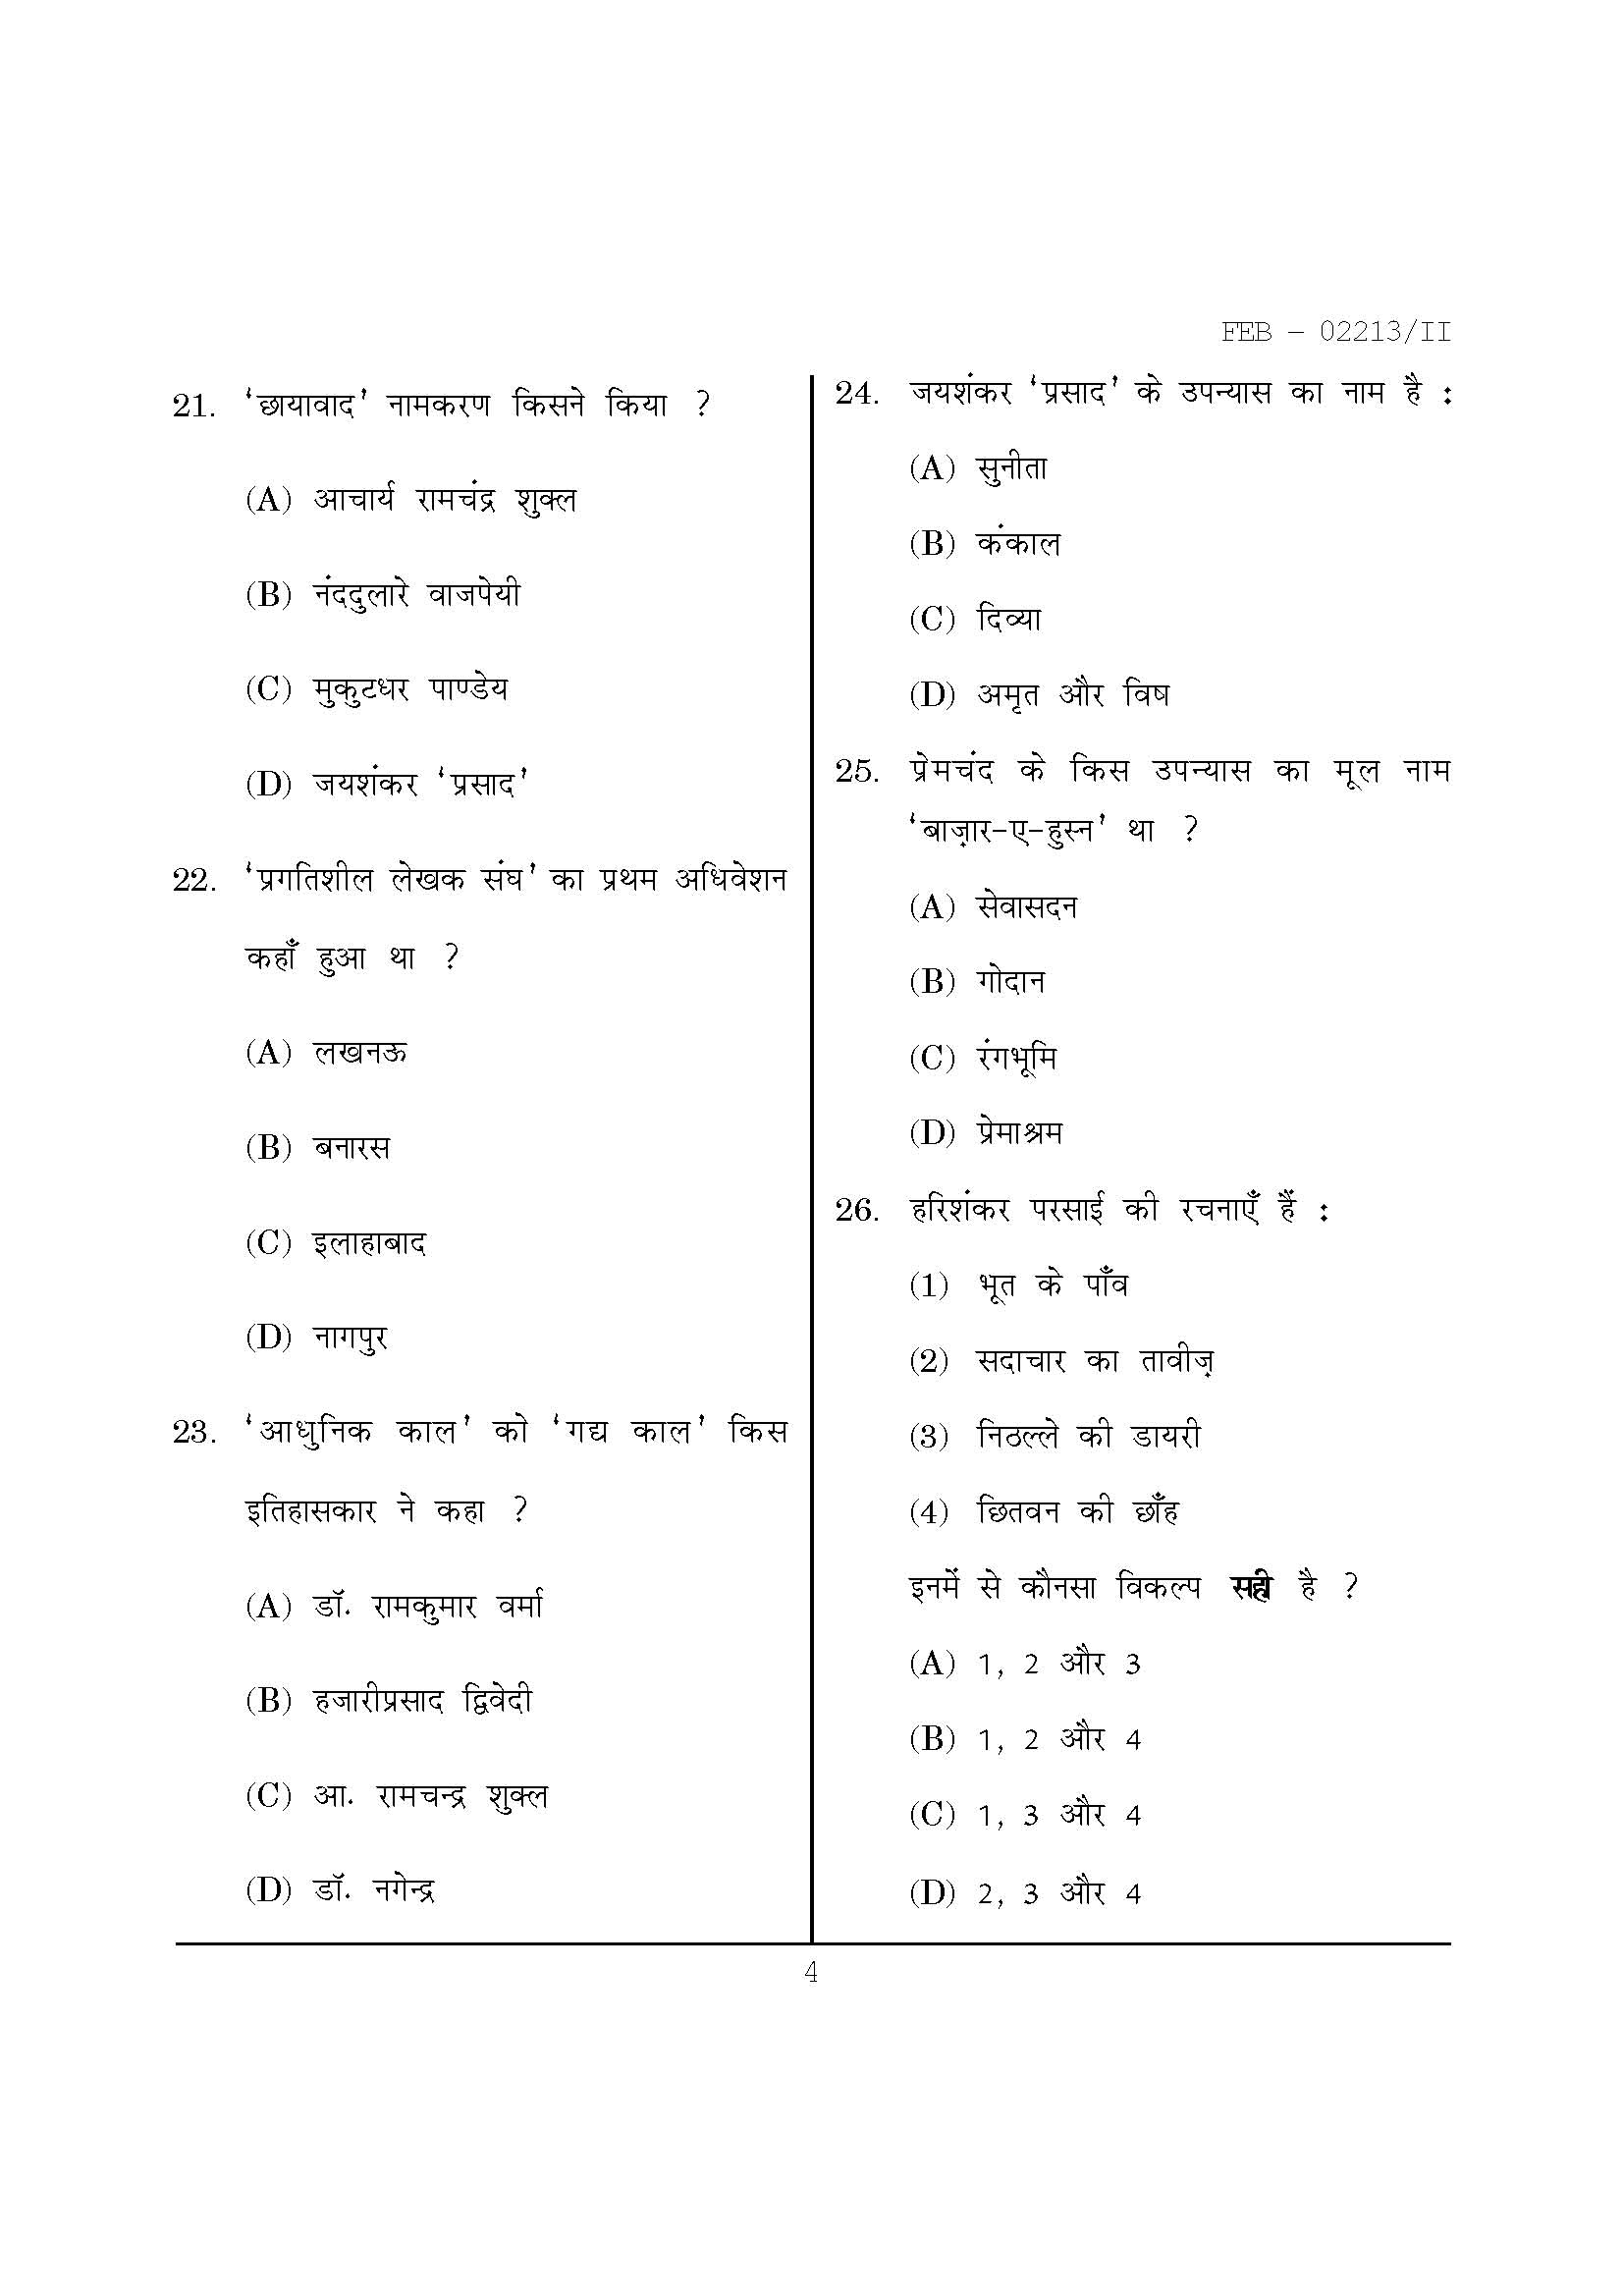 ICAR AIEEA Previous Year Question Papers PDF Download - ICAR Sample Papers